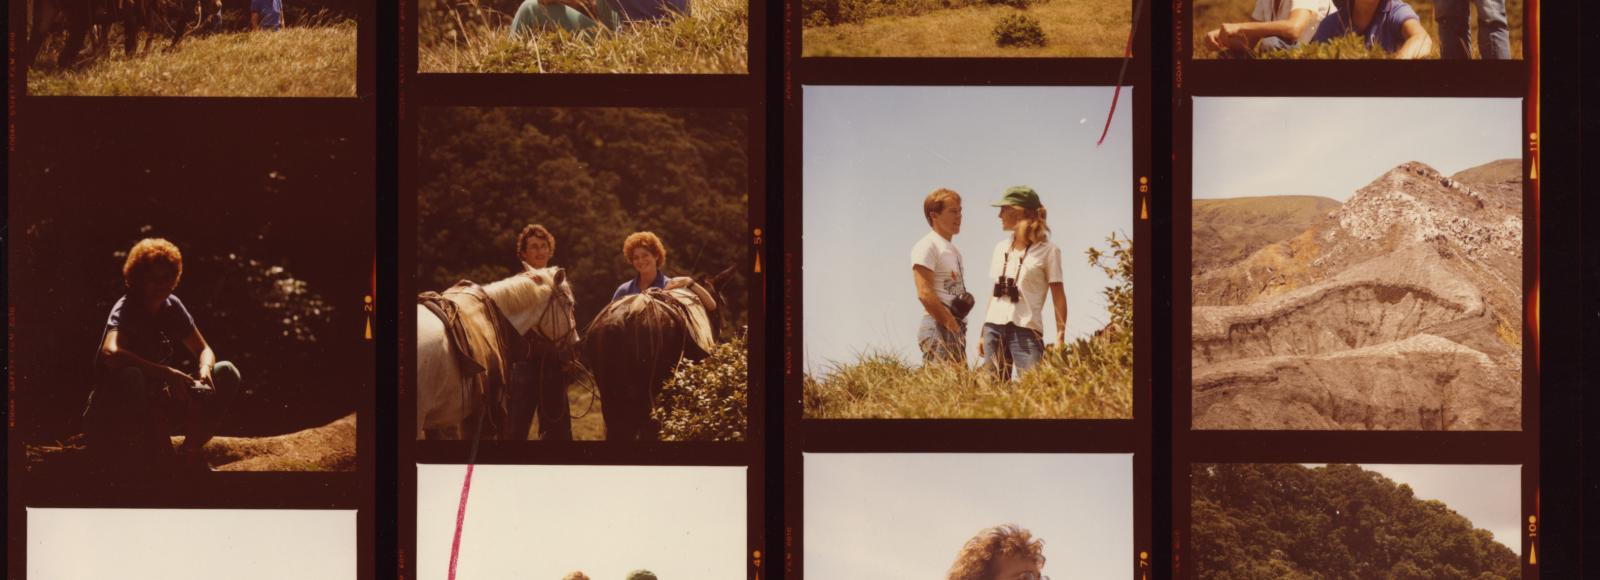 early 1980's slides of young men and women hiking and riding horses, costa rica